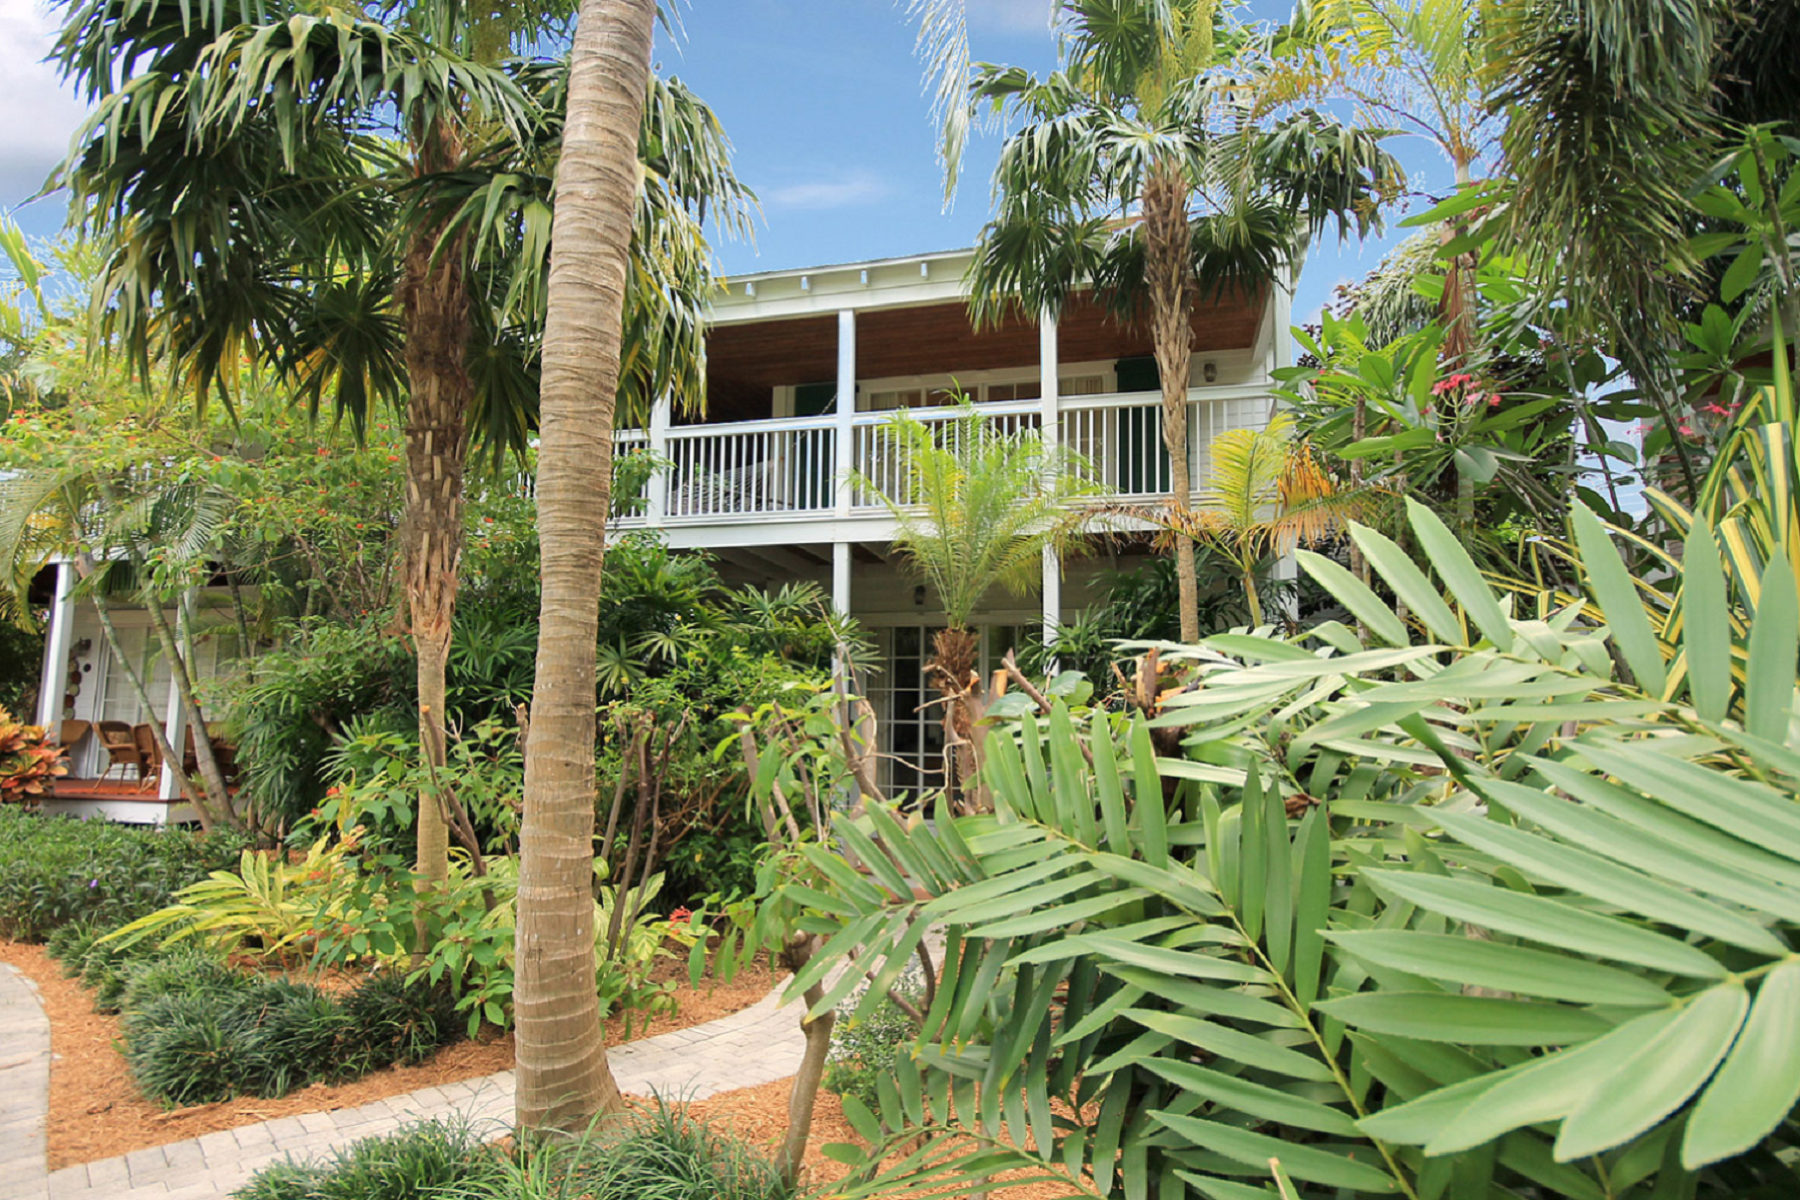 Maison unifamiliale pour l Vente à Open Water Views on a Private Island 70 Sunset Key Drive, Key West, Florida, 33040 États-Unis